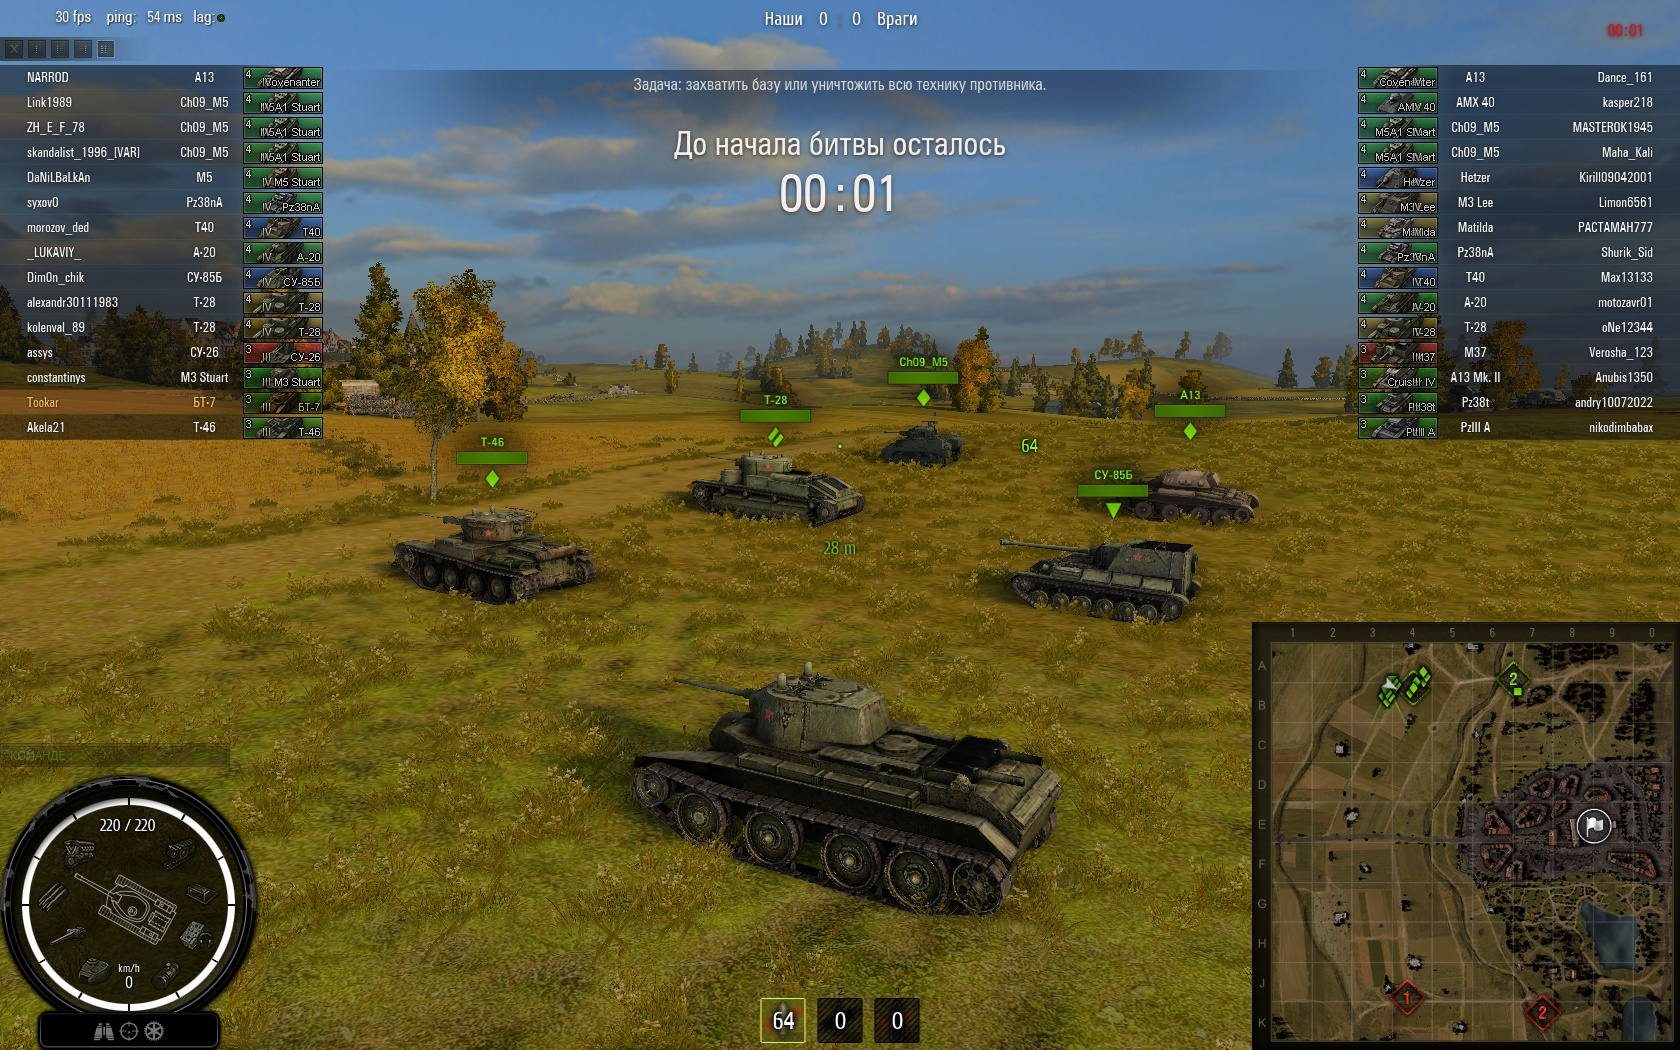 "World of Tanks ""Текстуры HD"" - Файлы - патч, демо ...: www.playground.ru/files/world_of_tanks_tekstury_hd-64154"